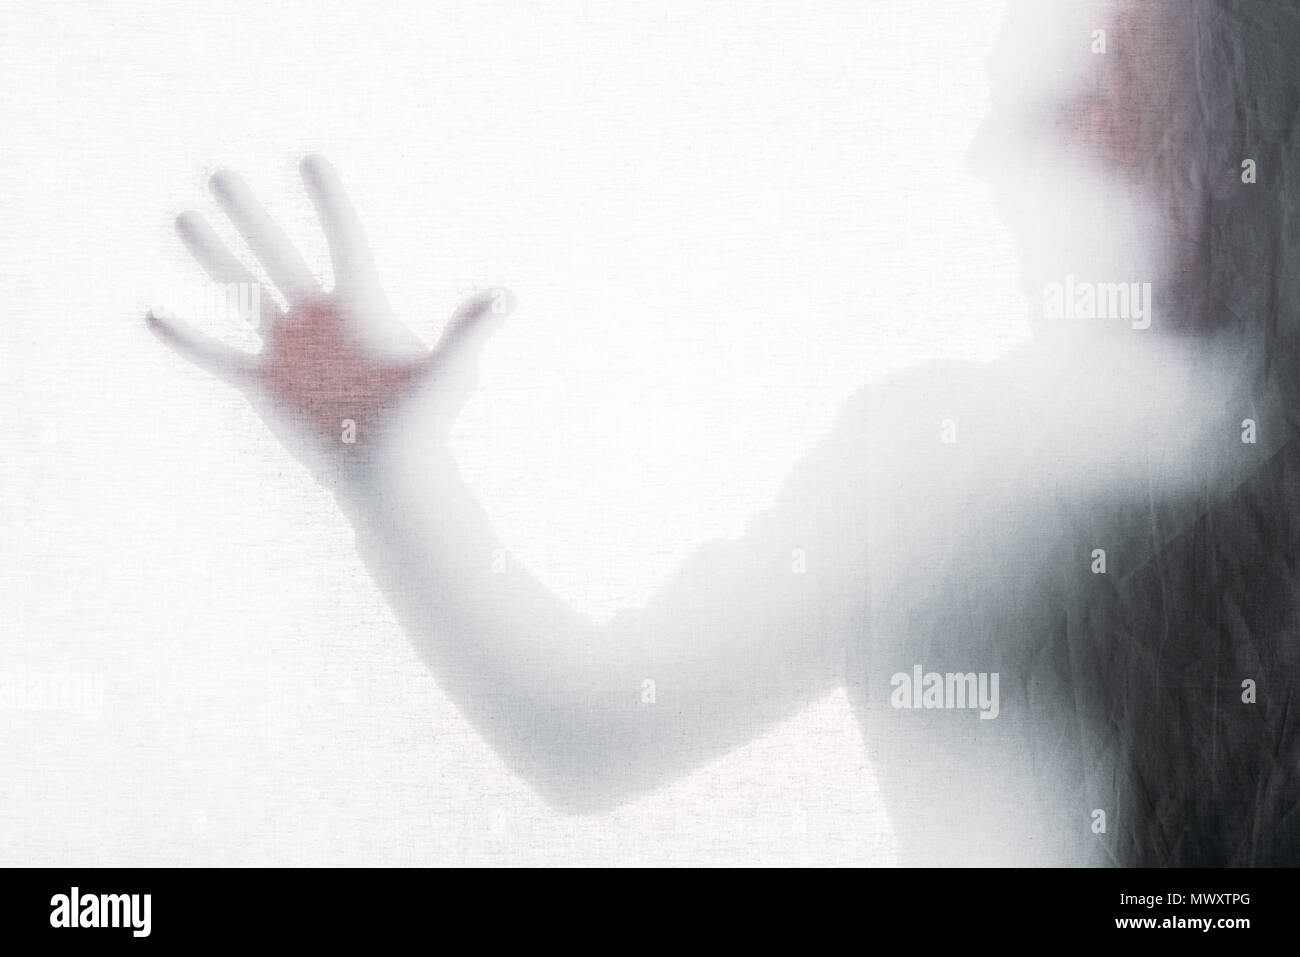 blurry silhouette of screaming person touching frosted glass Stock Photo